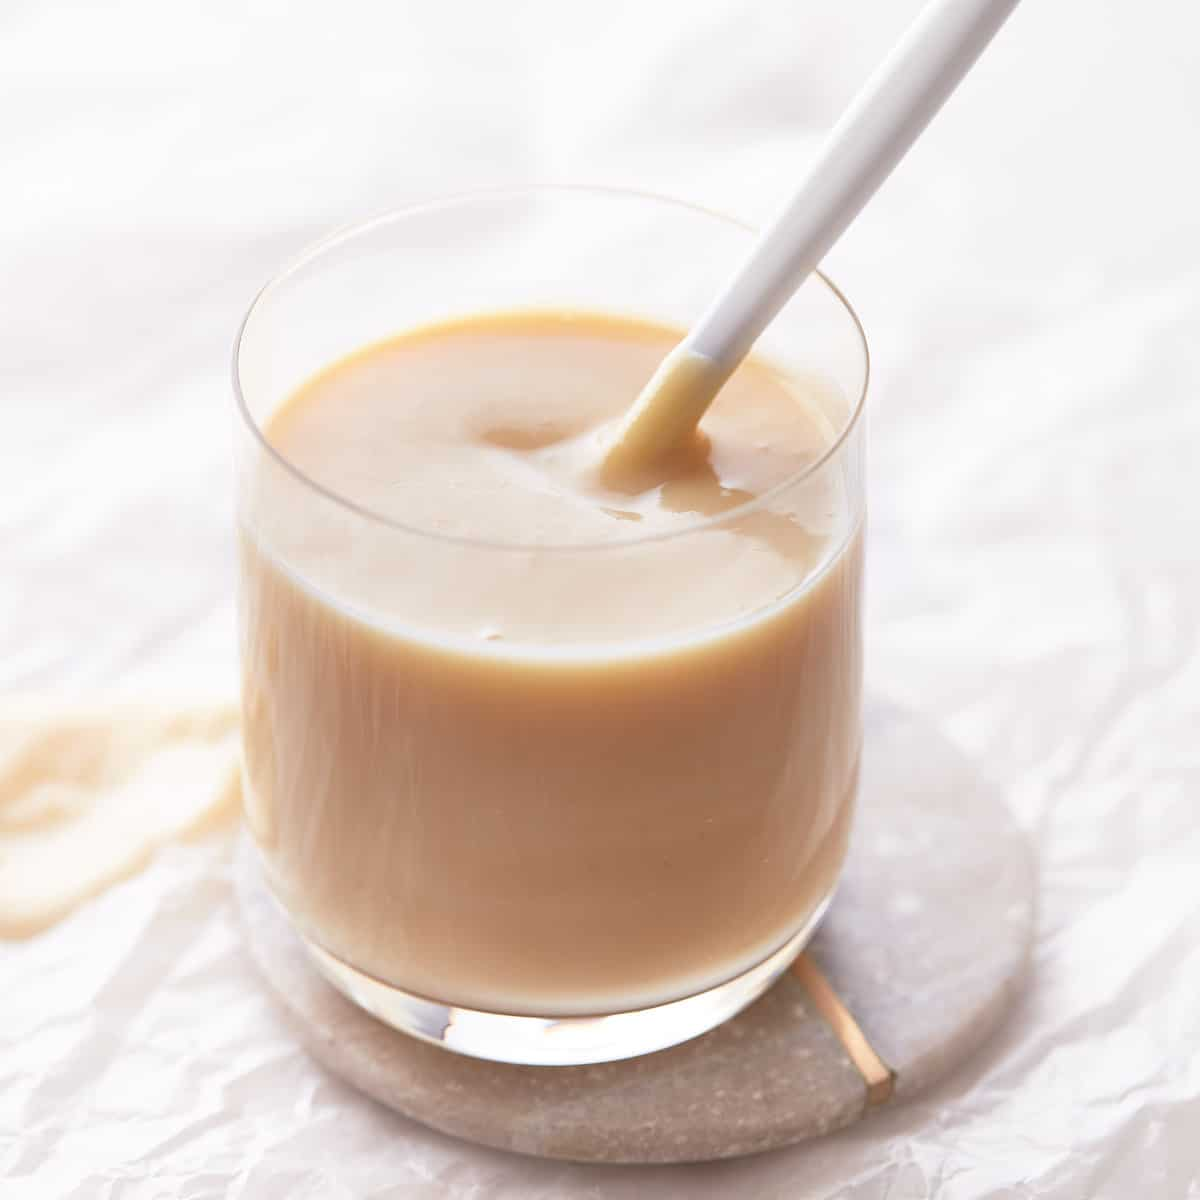 Decorative picture of condensed milk in a glass with a spoon in it